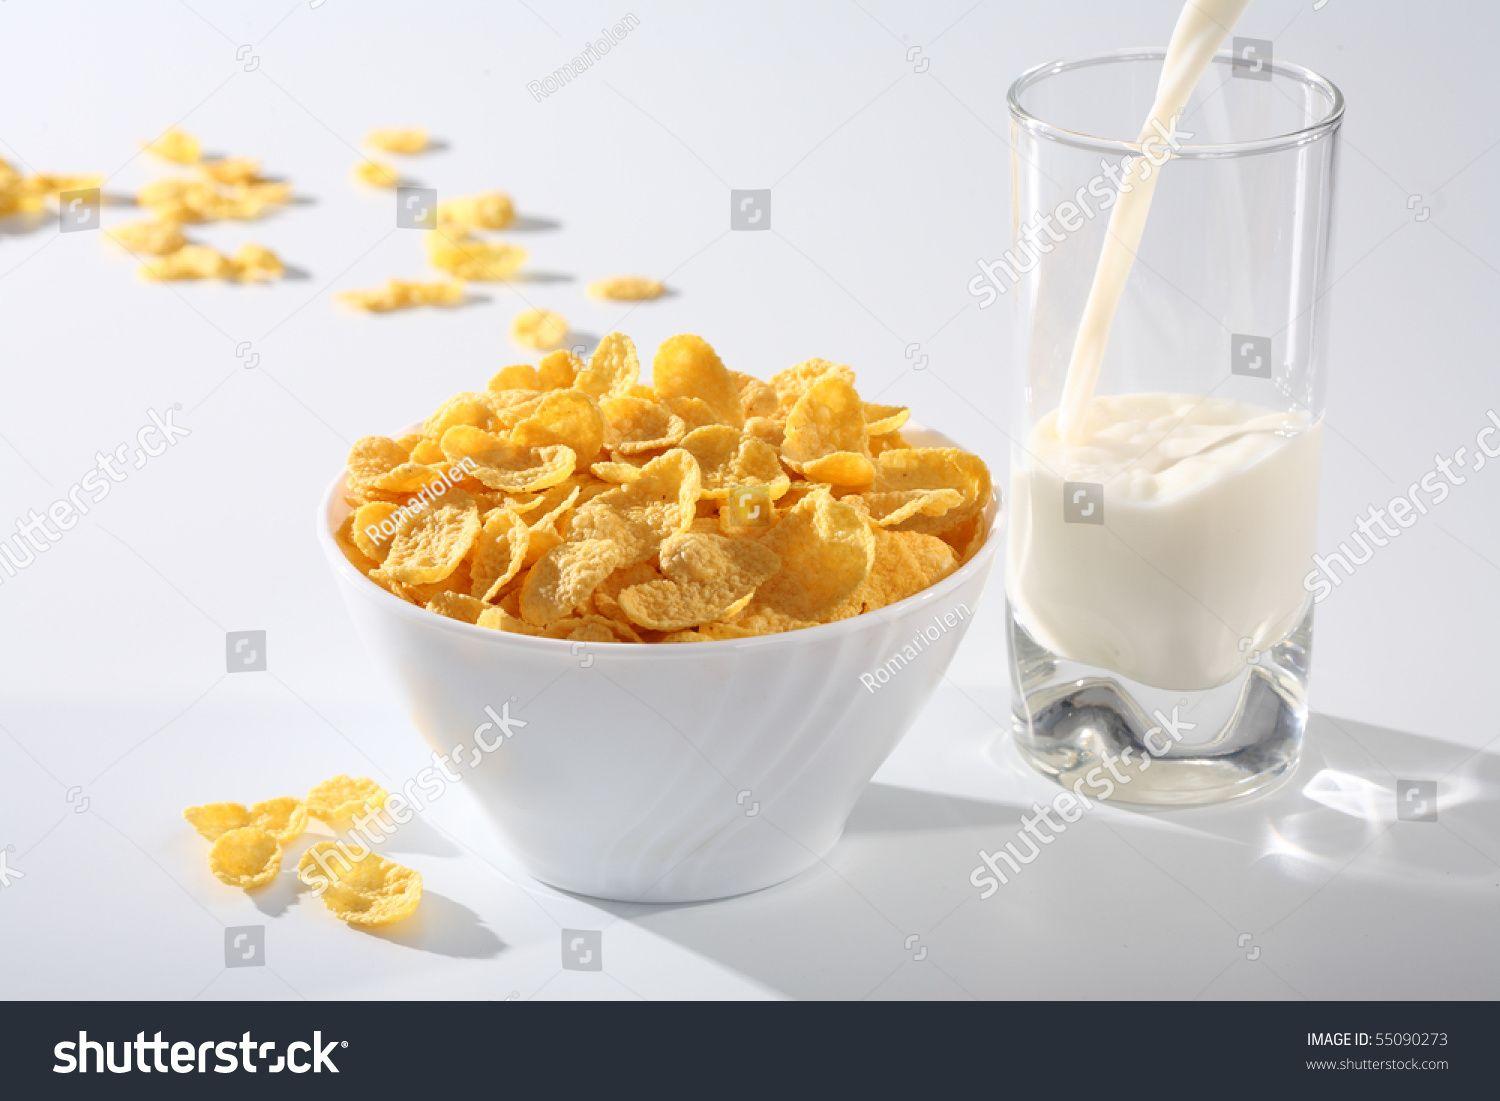 Healthy Breakfast Milk With Corn Flakes On White Sponsored